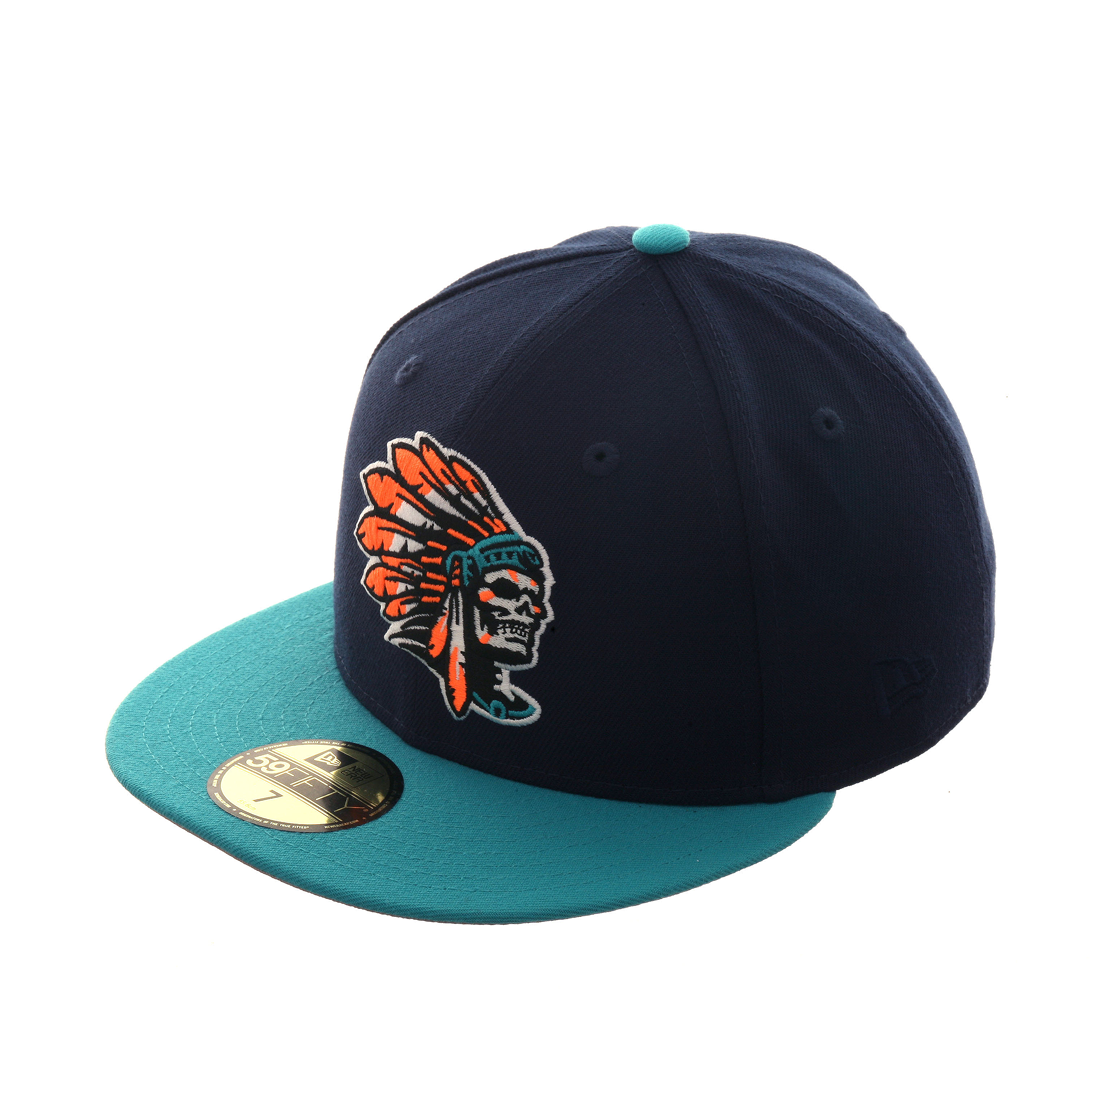 Exclusive New Era 59Fifty Skull Chief Hat - 2T Navy 43560dfe8